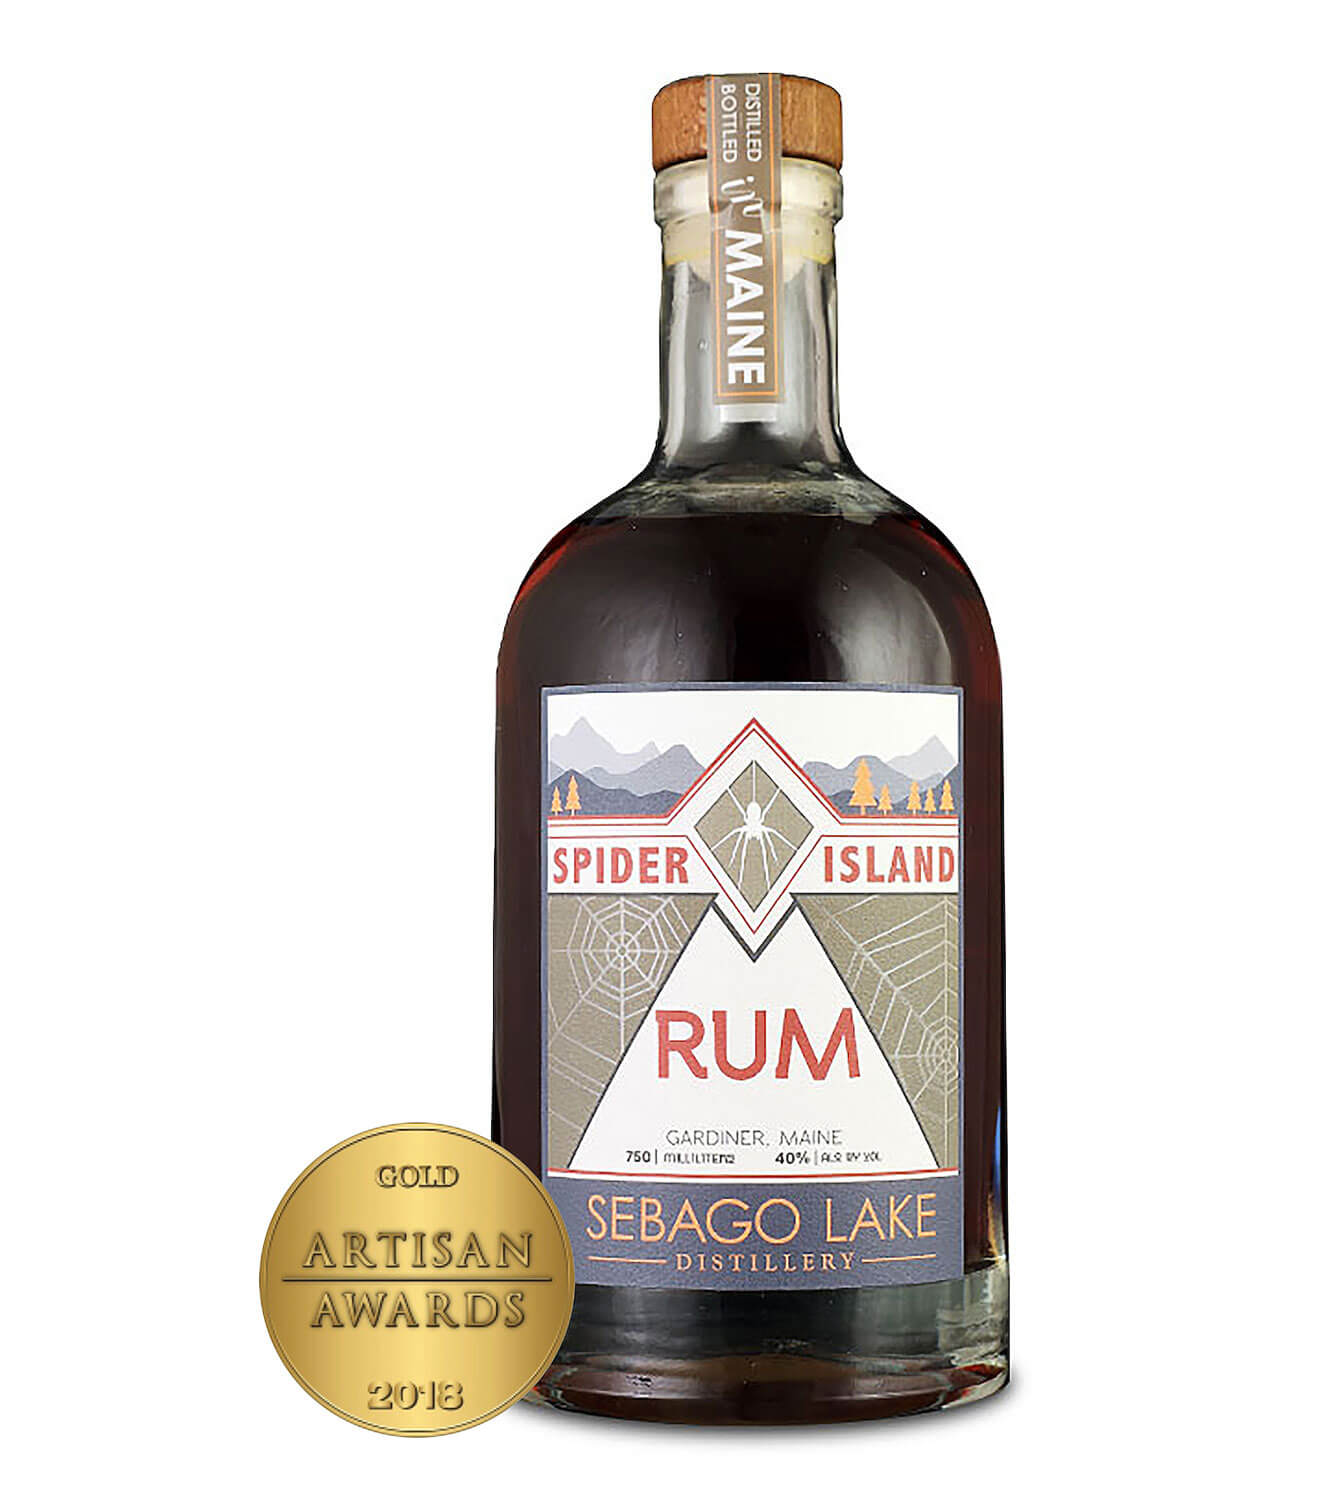 Spider Island Rum, bottle with award on white